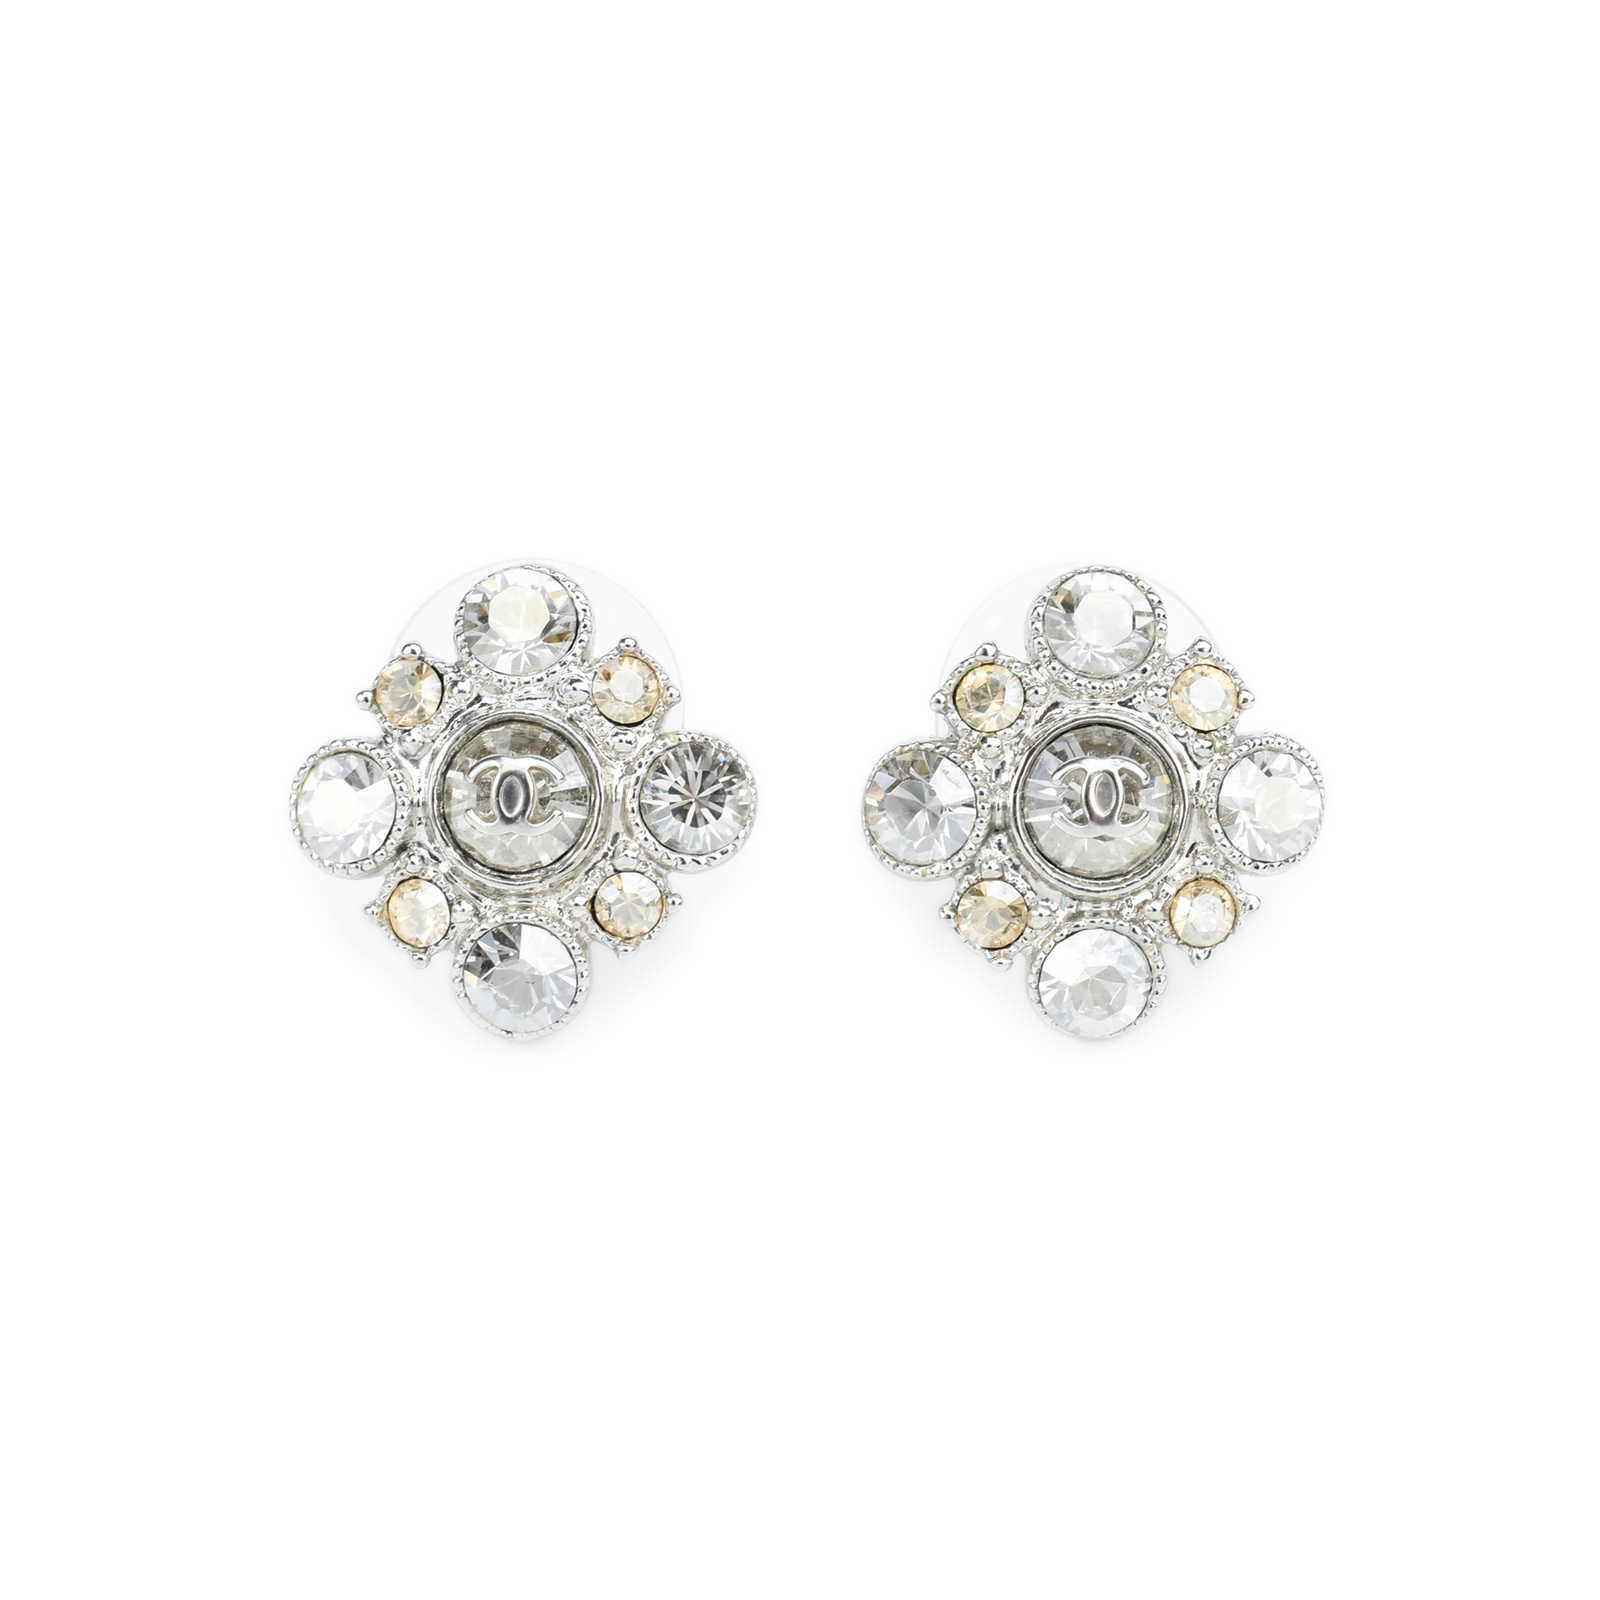 Authentic Pre Owned Chanel Crystal Flower Earrings Pss 247 00025 Thumbnail